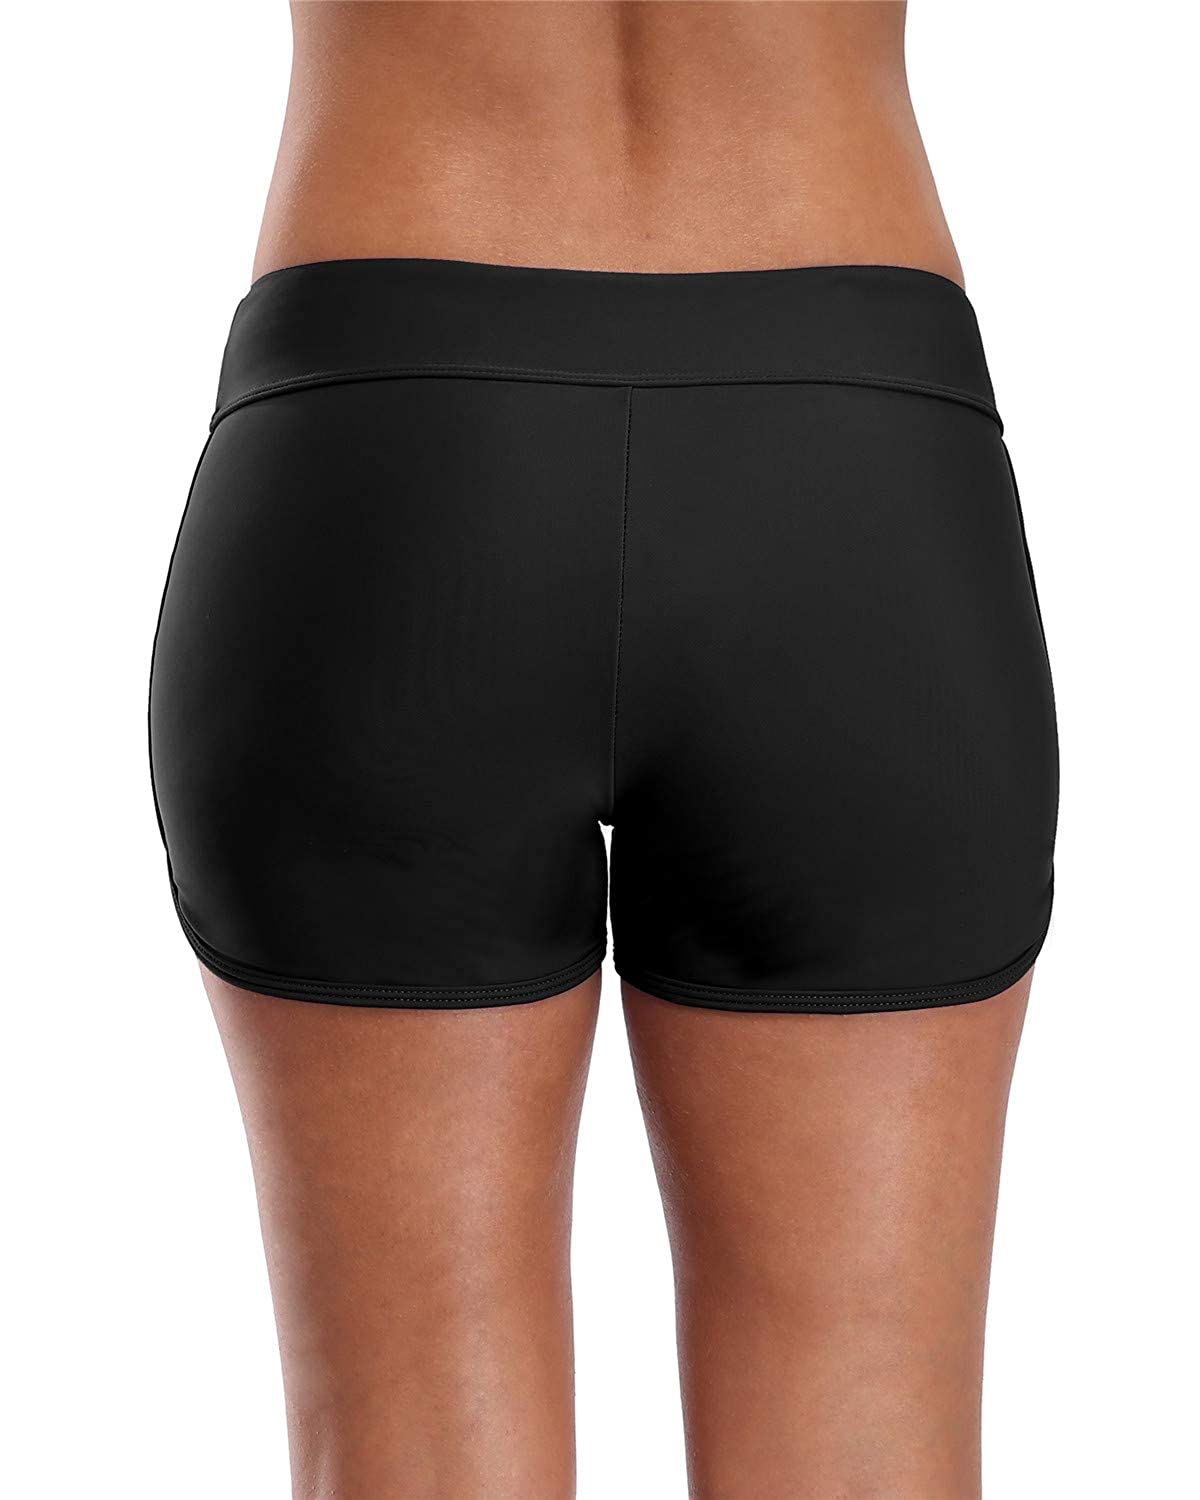 ALove Womens Solid Swim Shorts Stretch Board Shorts Swimsuit Bottoms